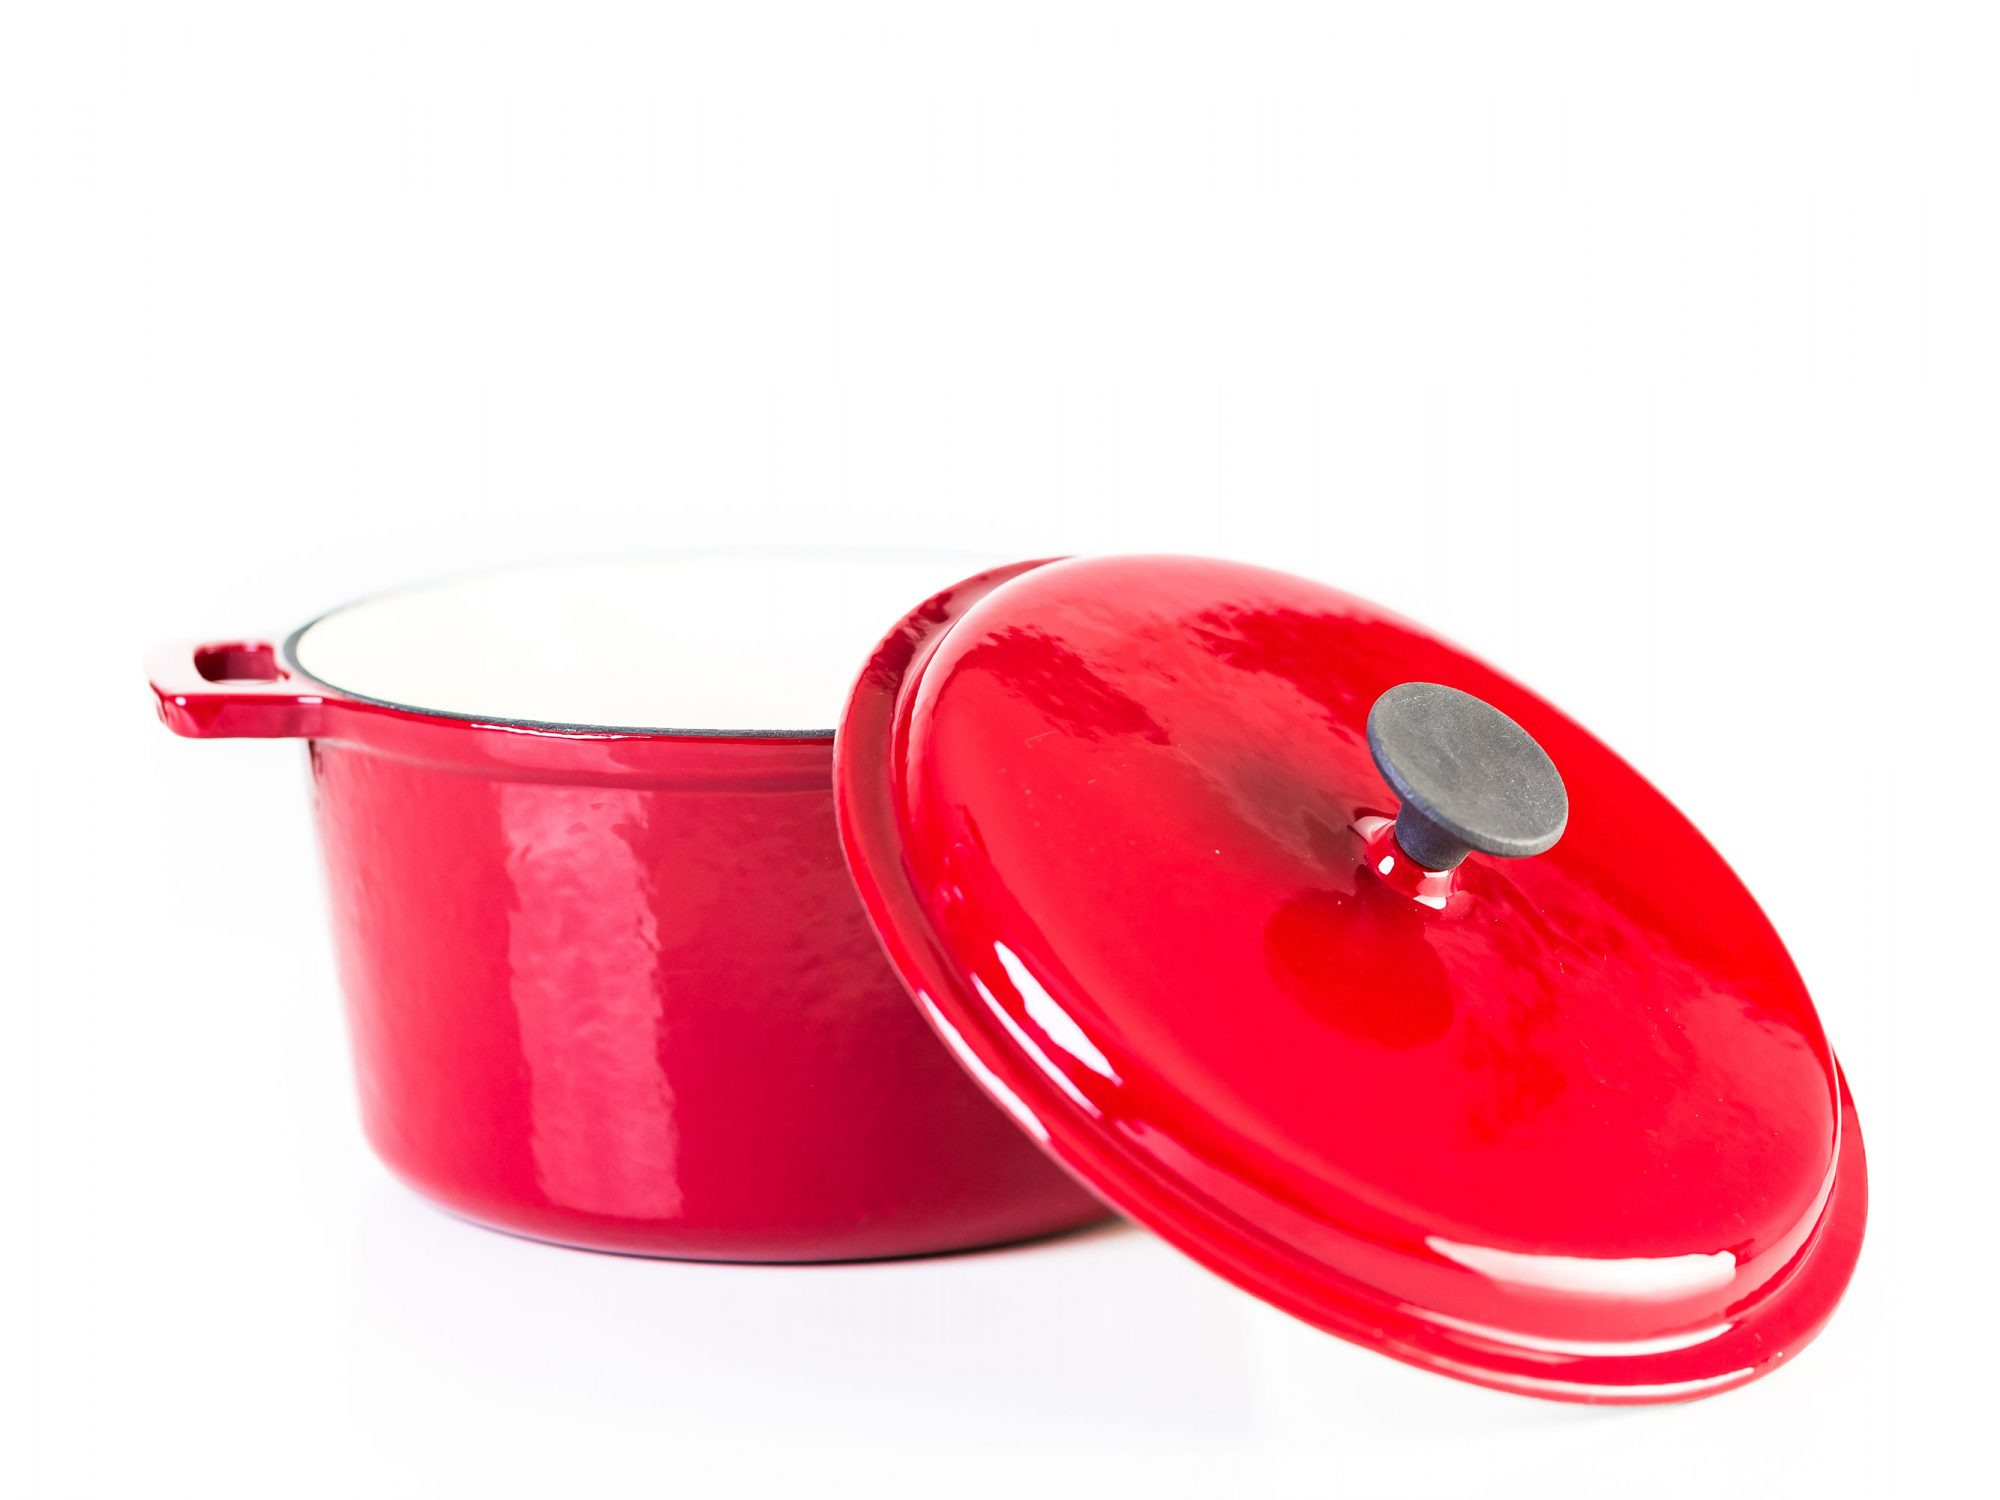 Red Enameled Cast Iron Dutch Oven